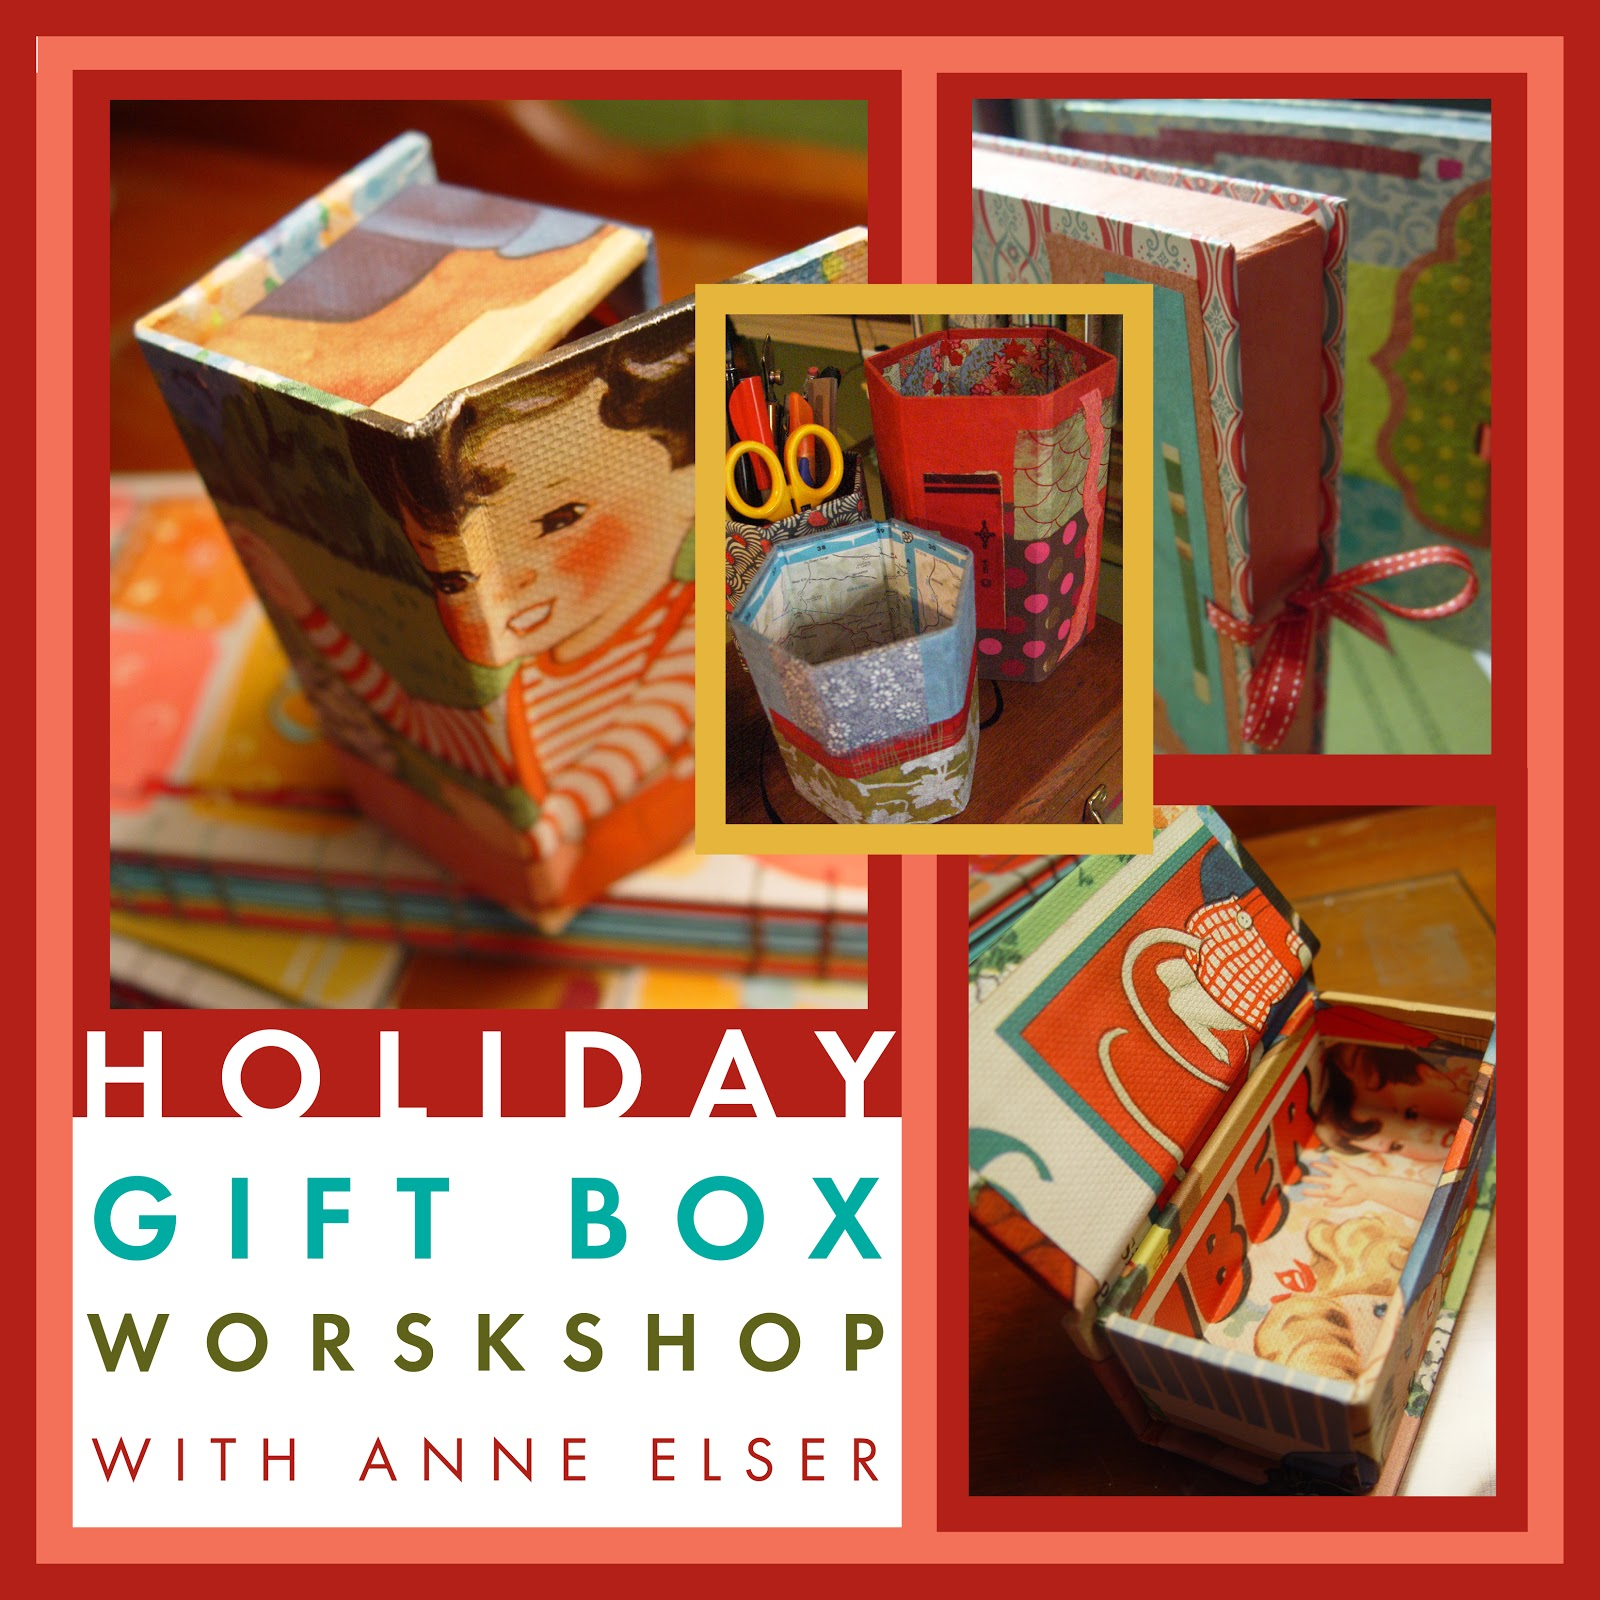 anne elser holiday gift box weekend workshop starts this saturday. Black Bedroom Furniture Sets. Home Design Ideas